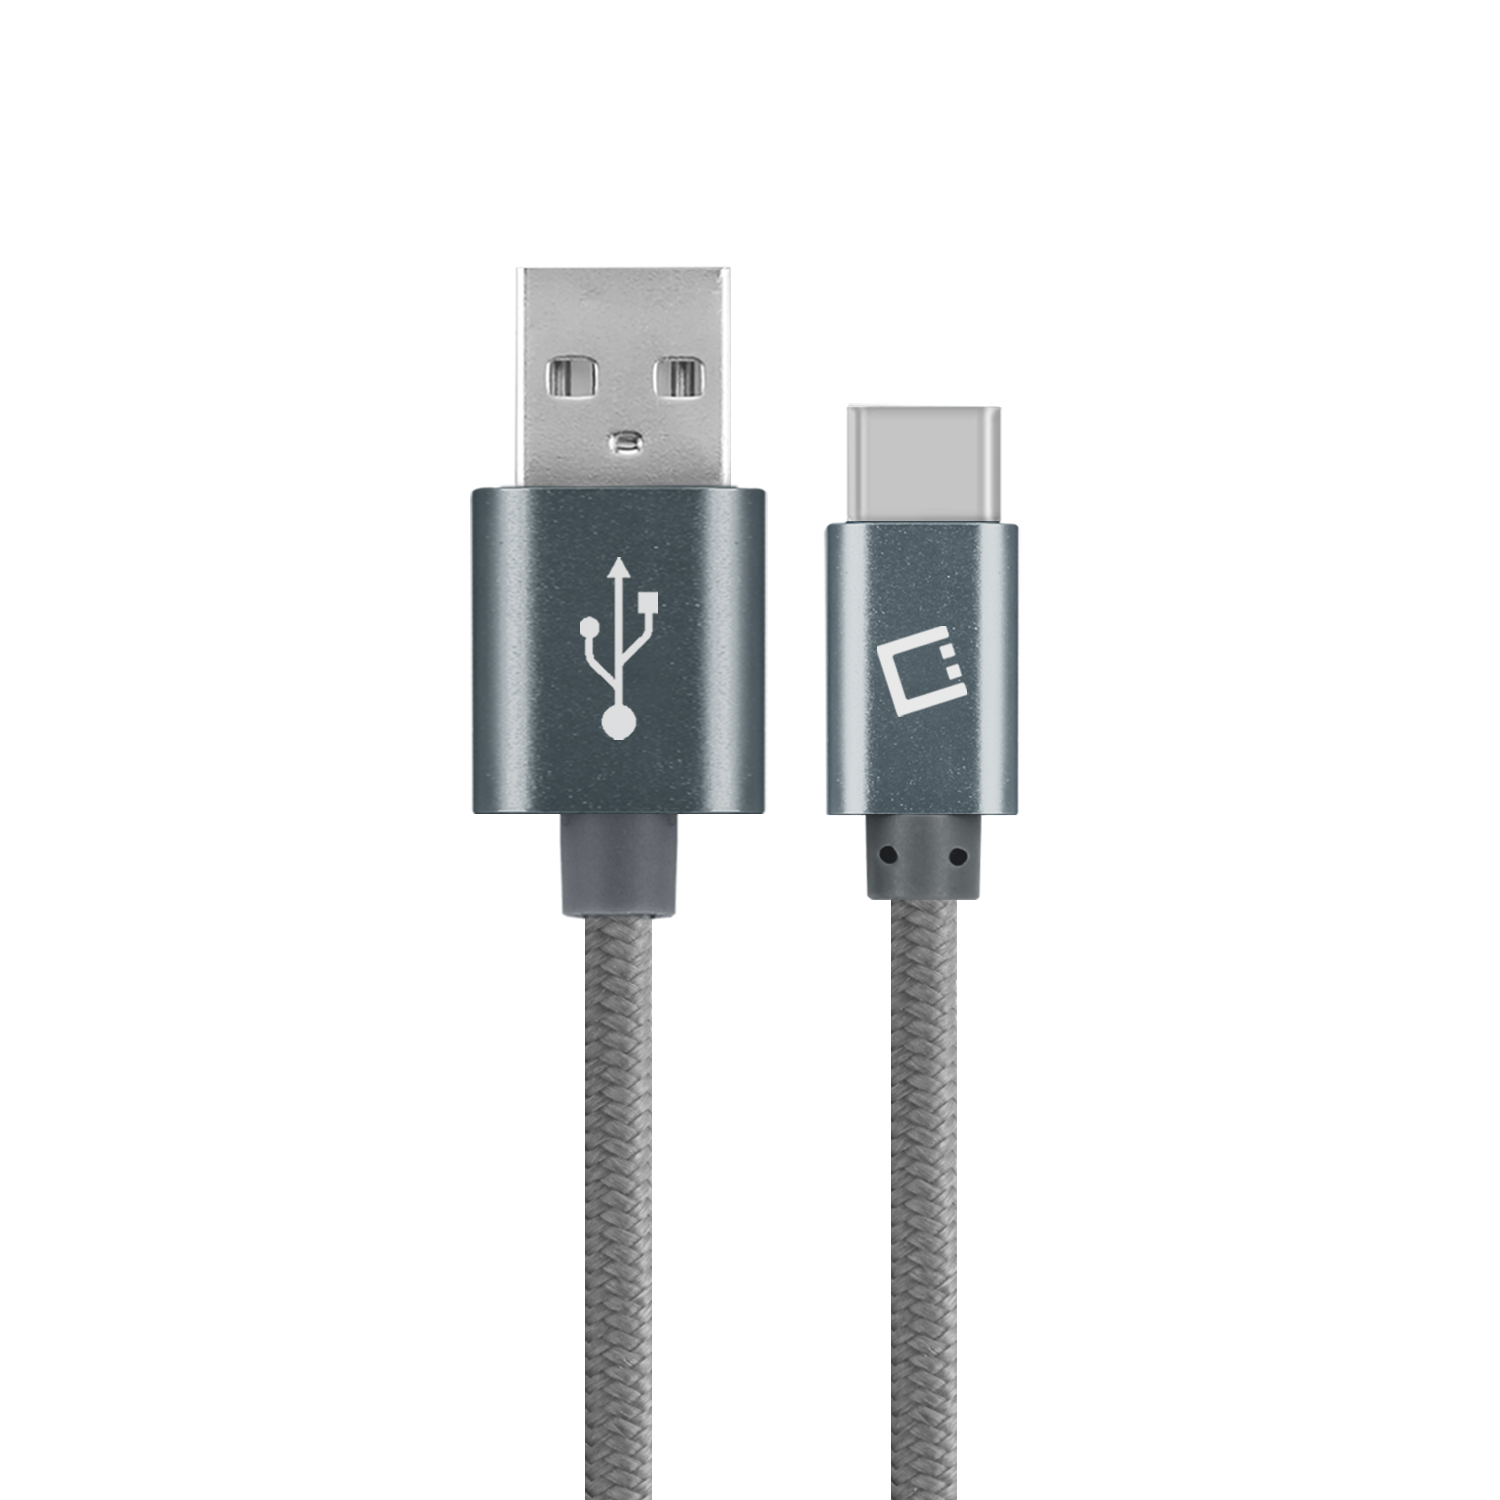 ZTE Blade V8 Pro USB Type-C To Type-A Braided Data Power Cable Grey 10ft Braided